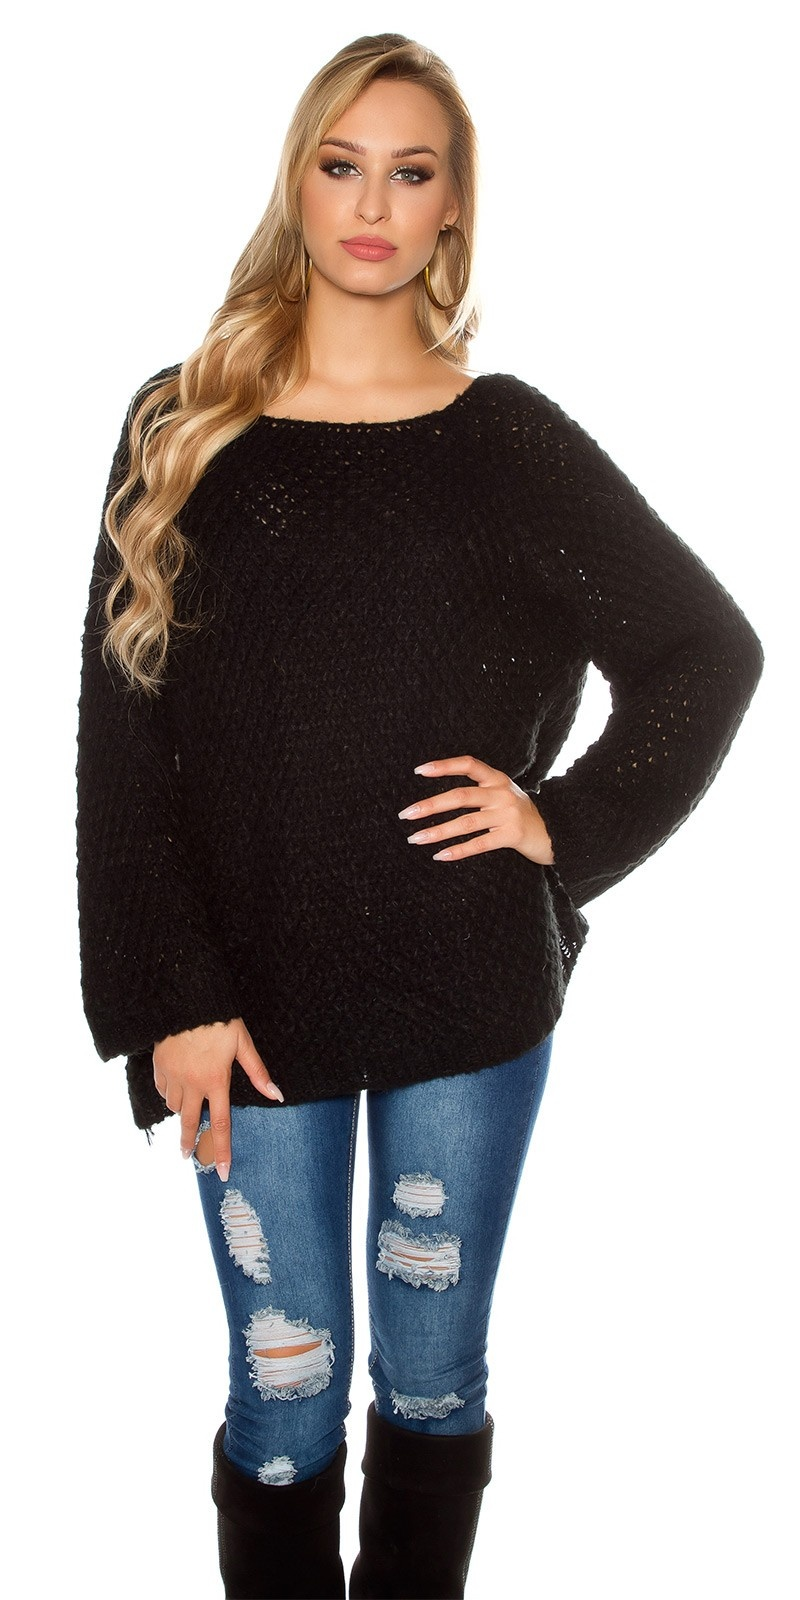 Trendy oversized mohair sweater-trui crochet look zwart